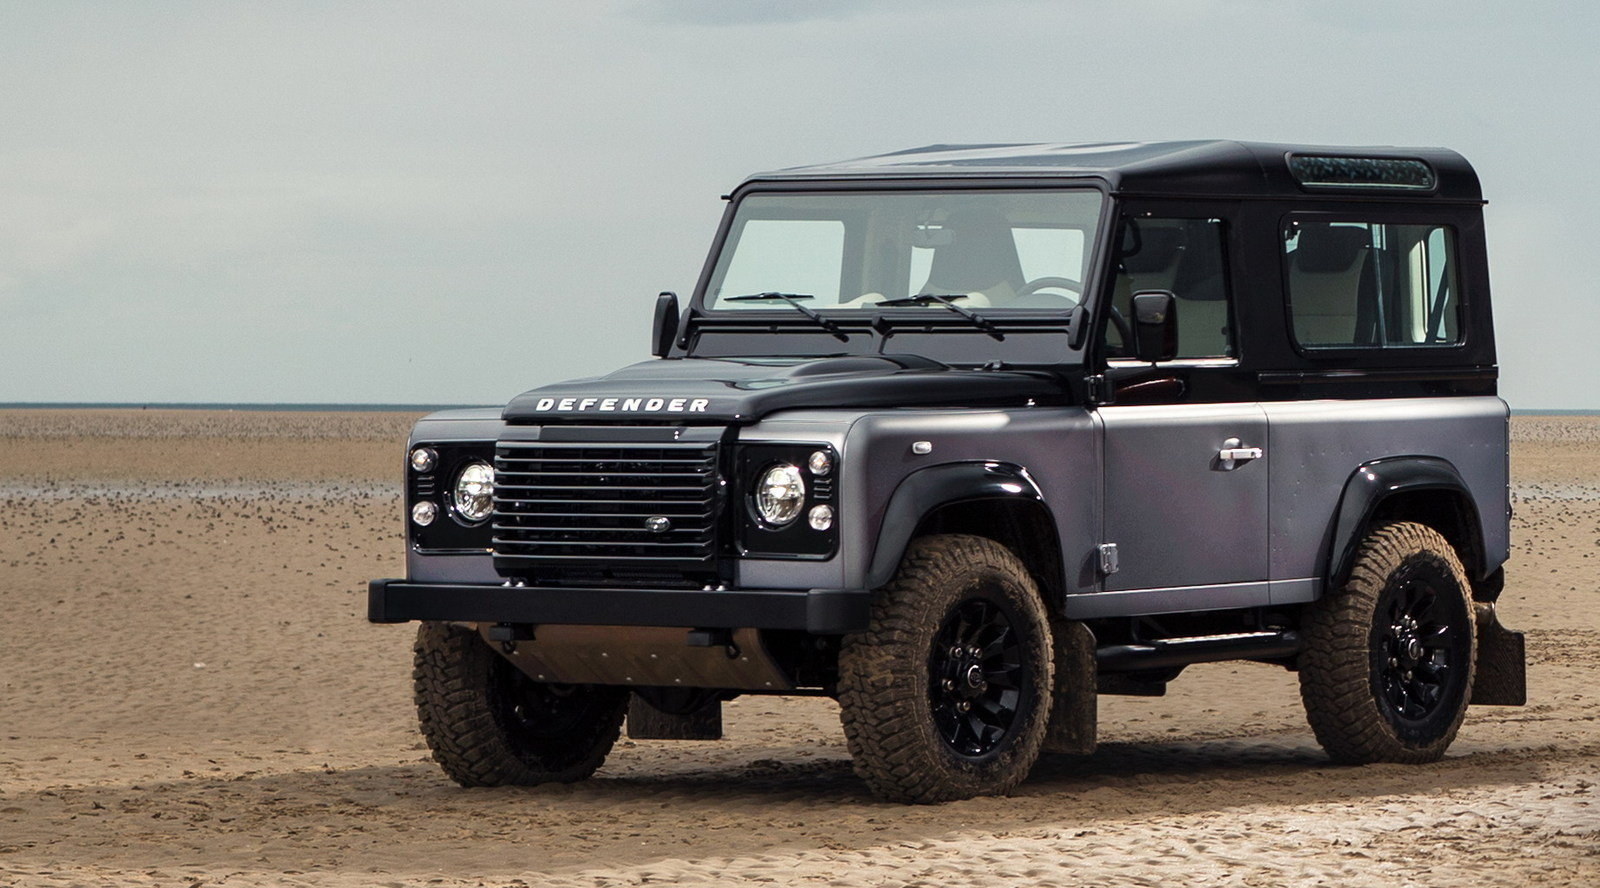 2015 land rover defender autobiography limited edition picture 609188 truck review top speed. Black Bedroom Furniture Sets. Home Design Ideas